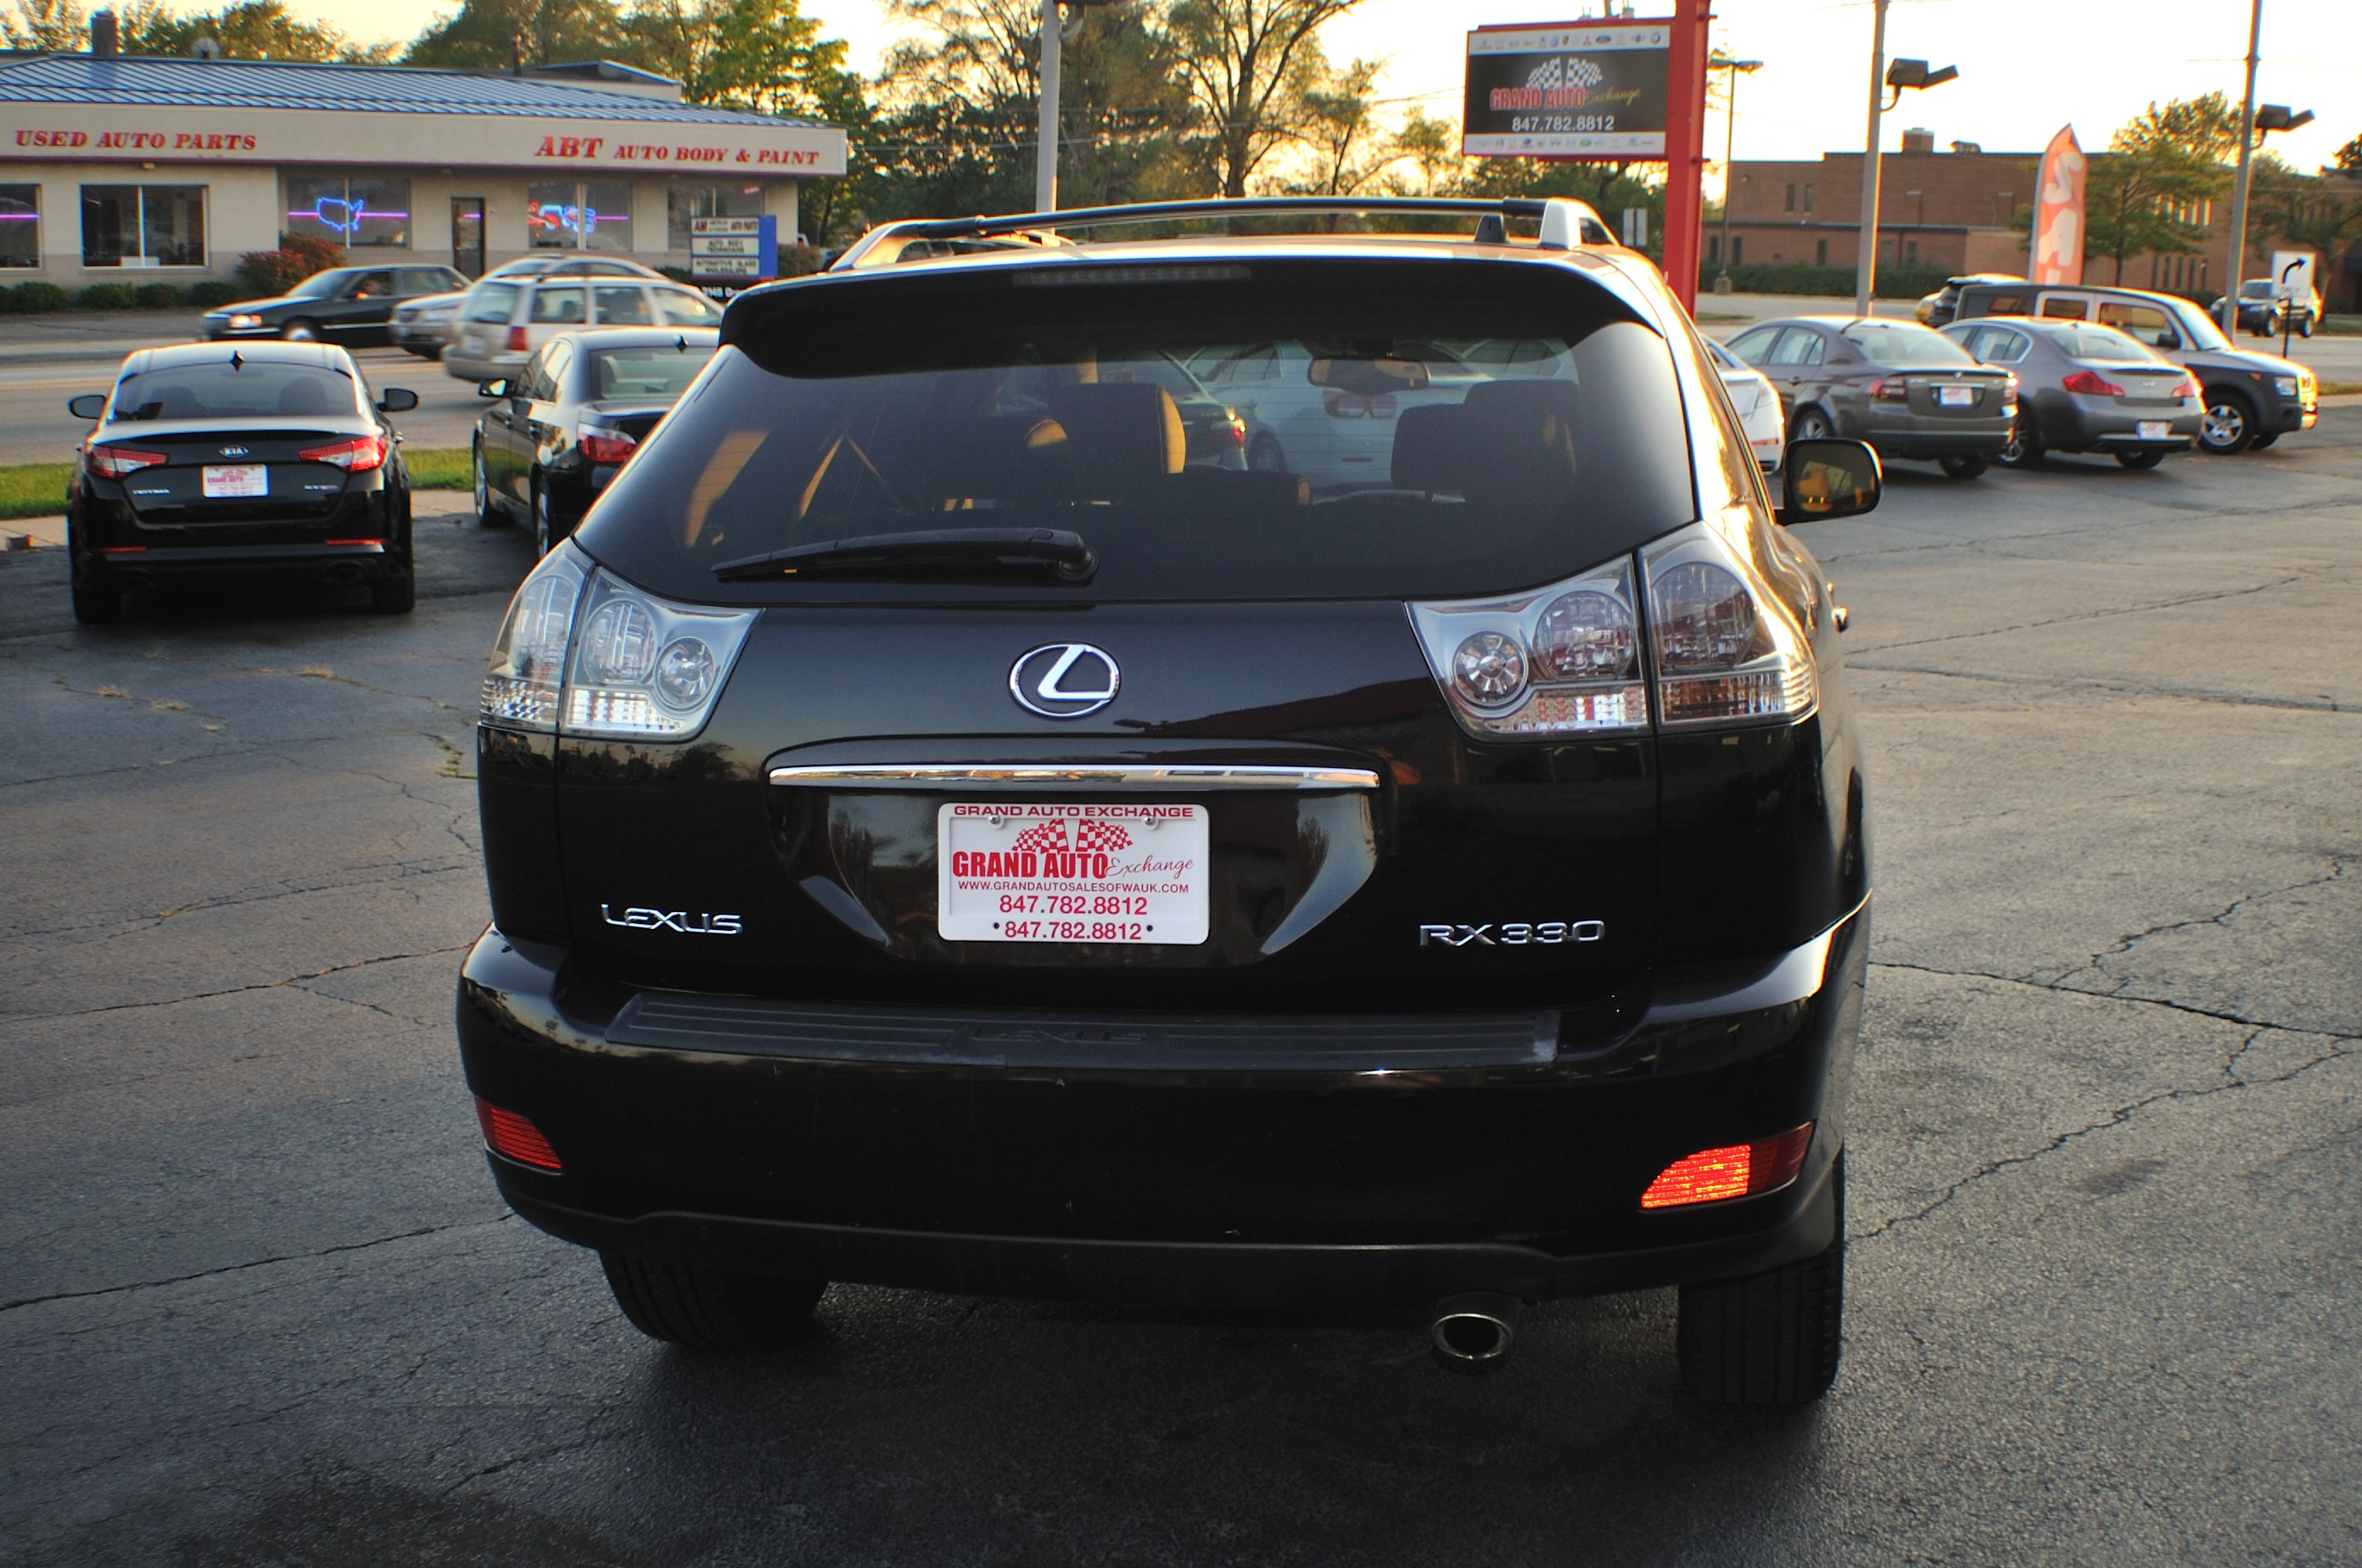 2004 Lexus RX330 Black SUV Car sale Fox River Grove Grayslake Volo